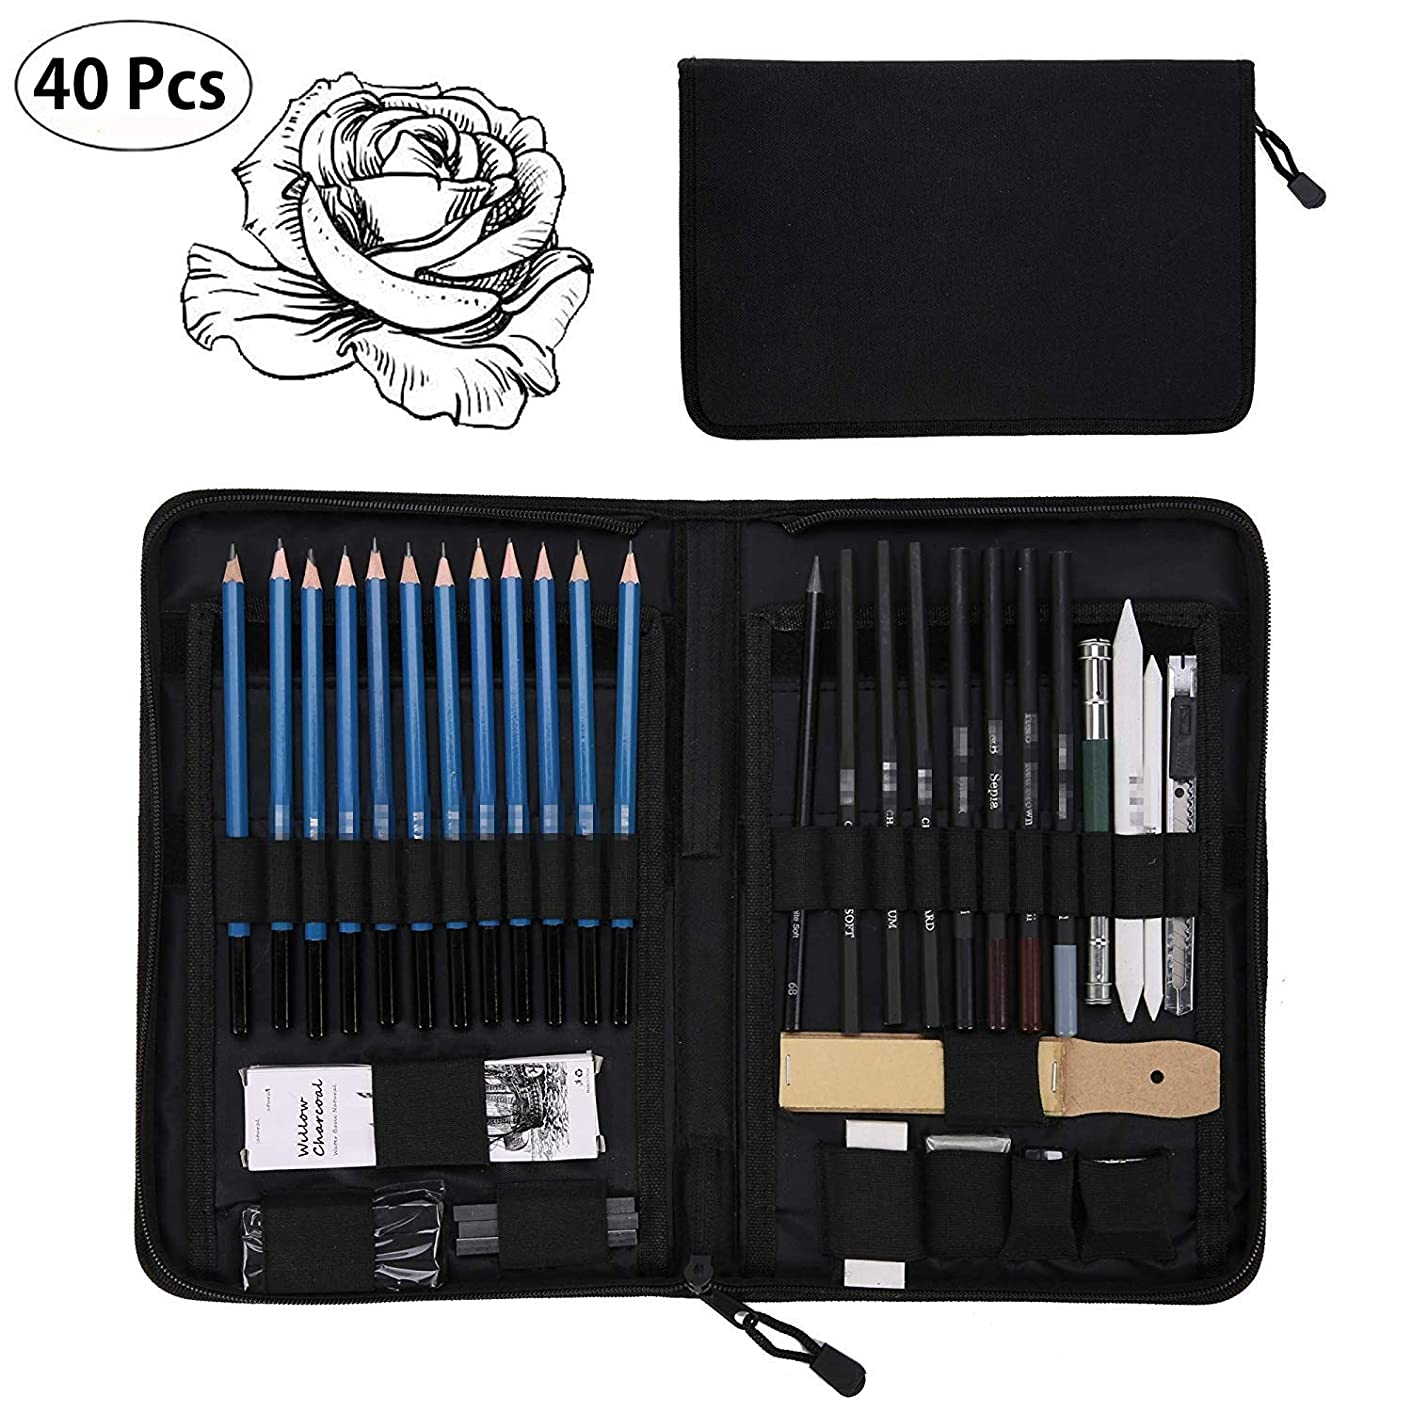 Yaegoo 40PCS Professional Art Sketching Pencils Set Drawing Pencils Set Charcoals Graphite Pencils Supplies with Sticks Tools and Kit Bag